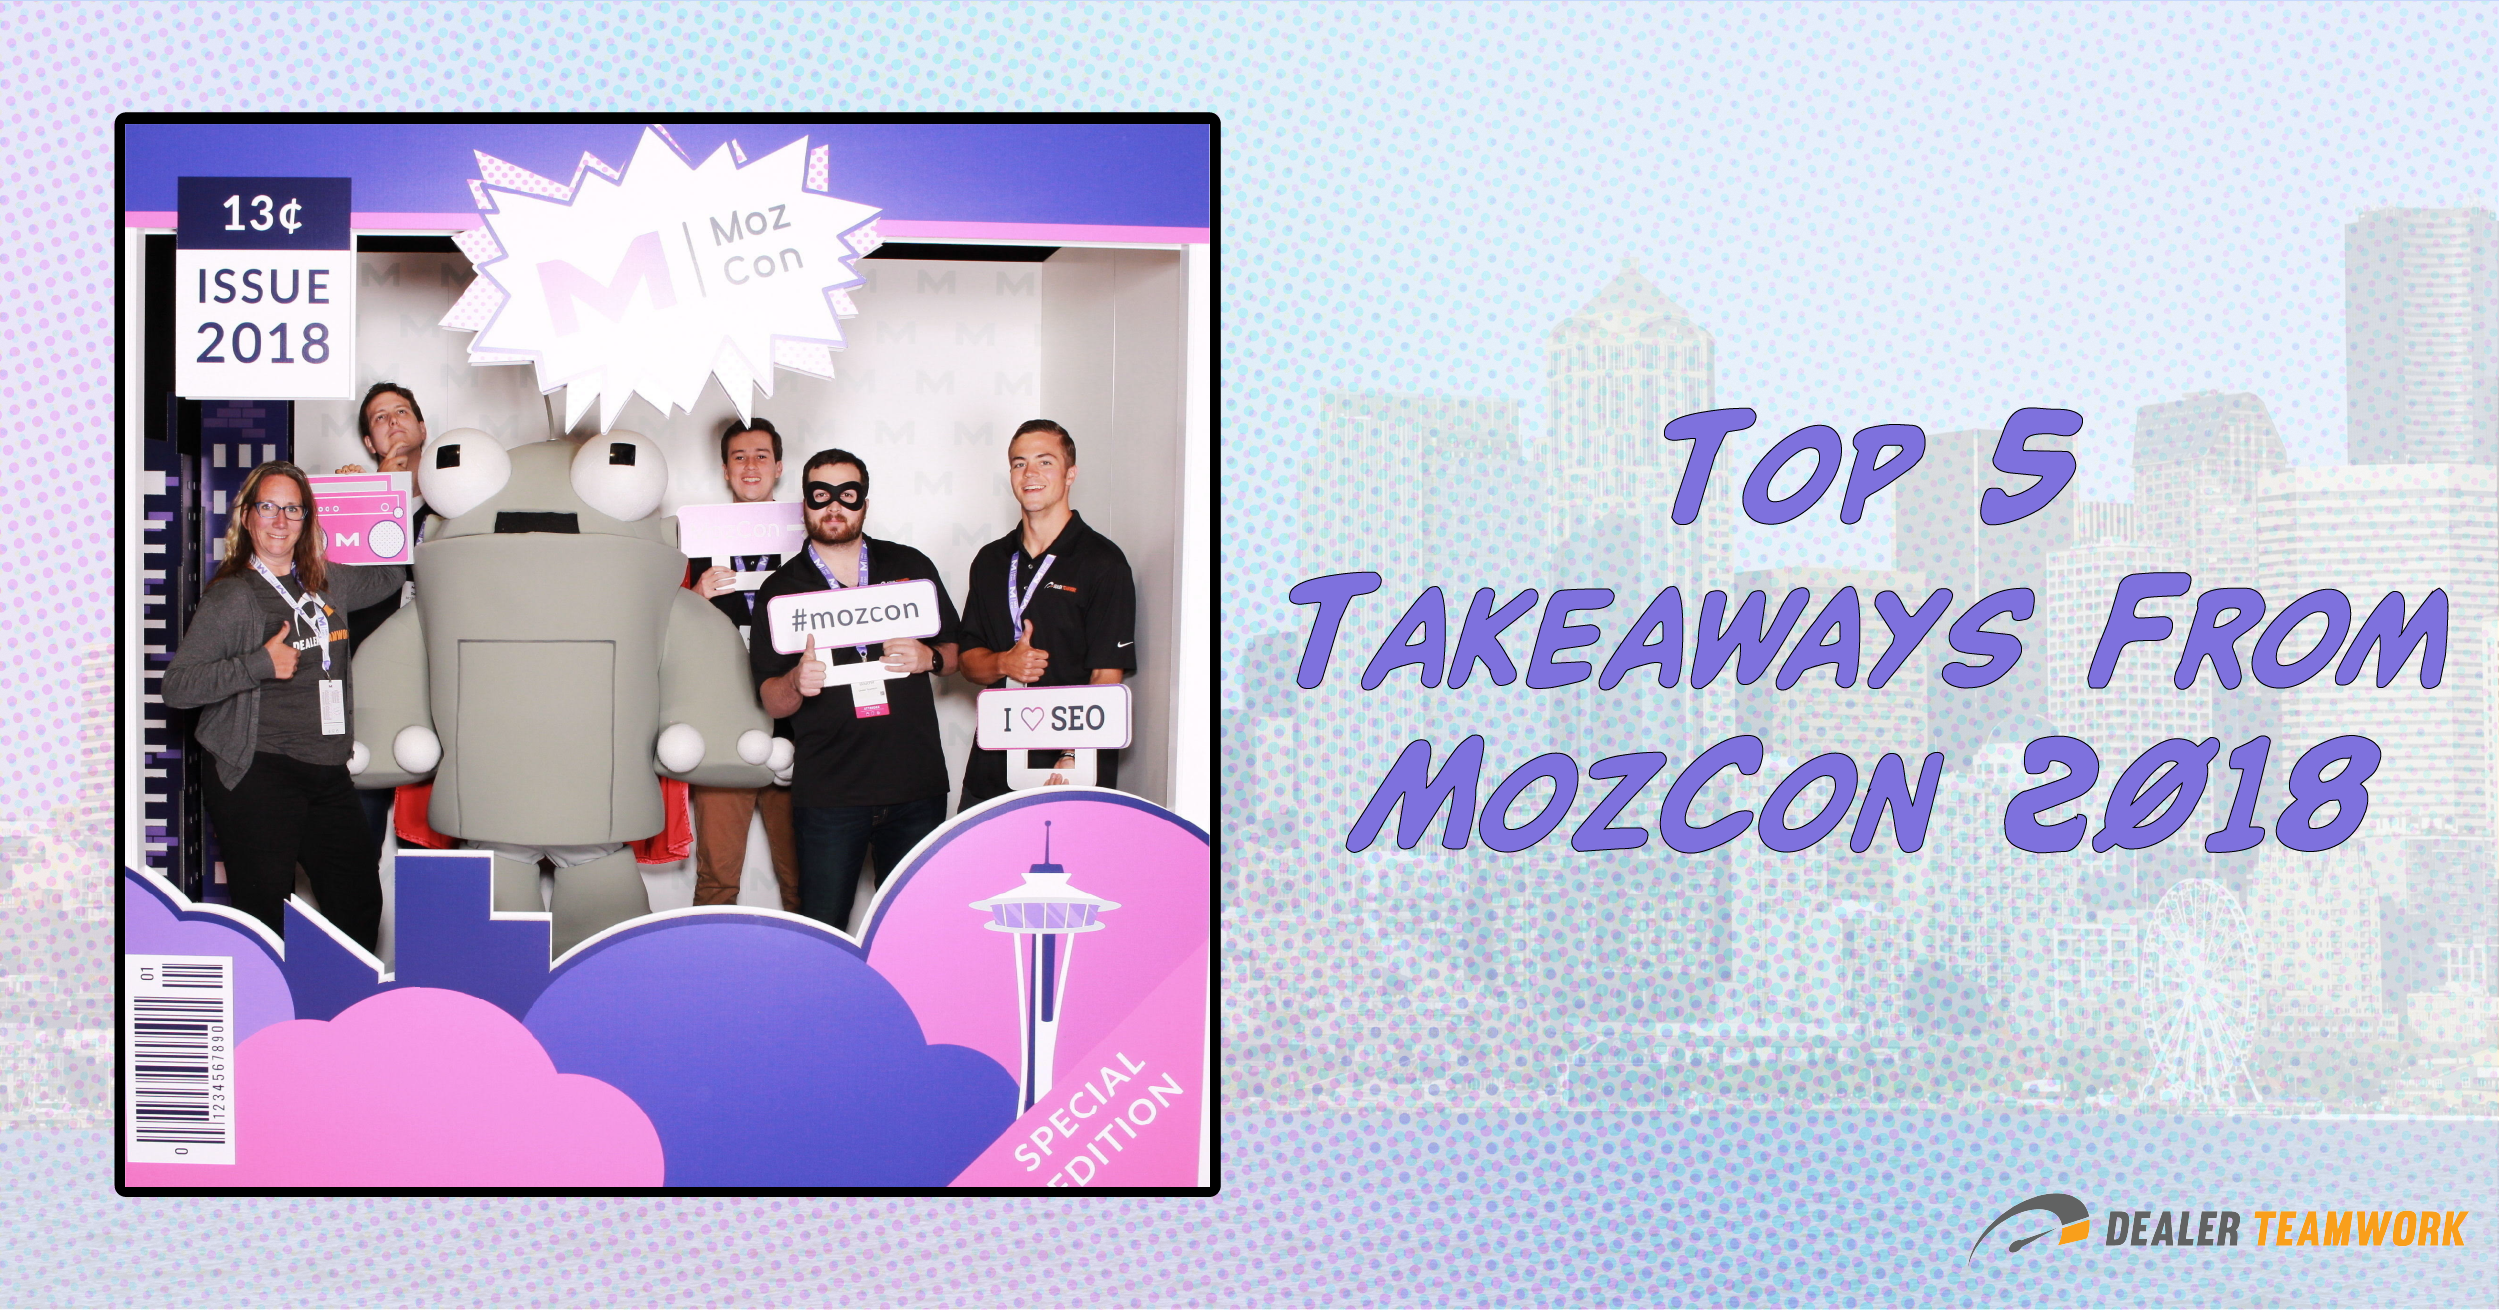 Top 5 Takeaways from MozCon 2018